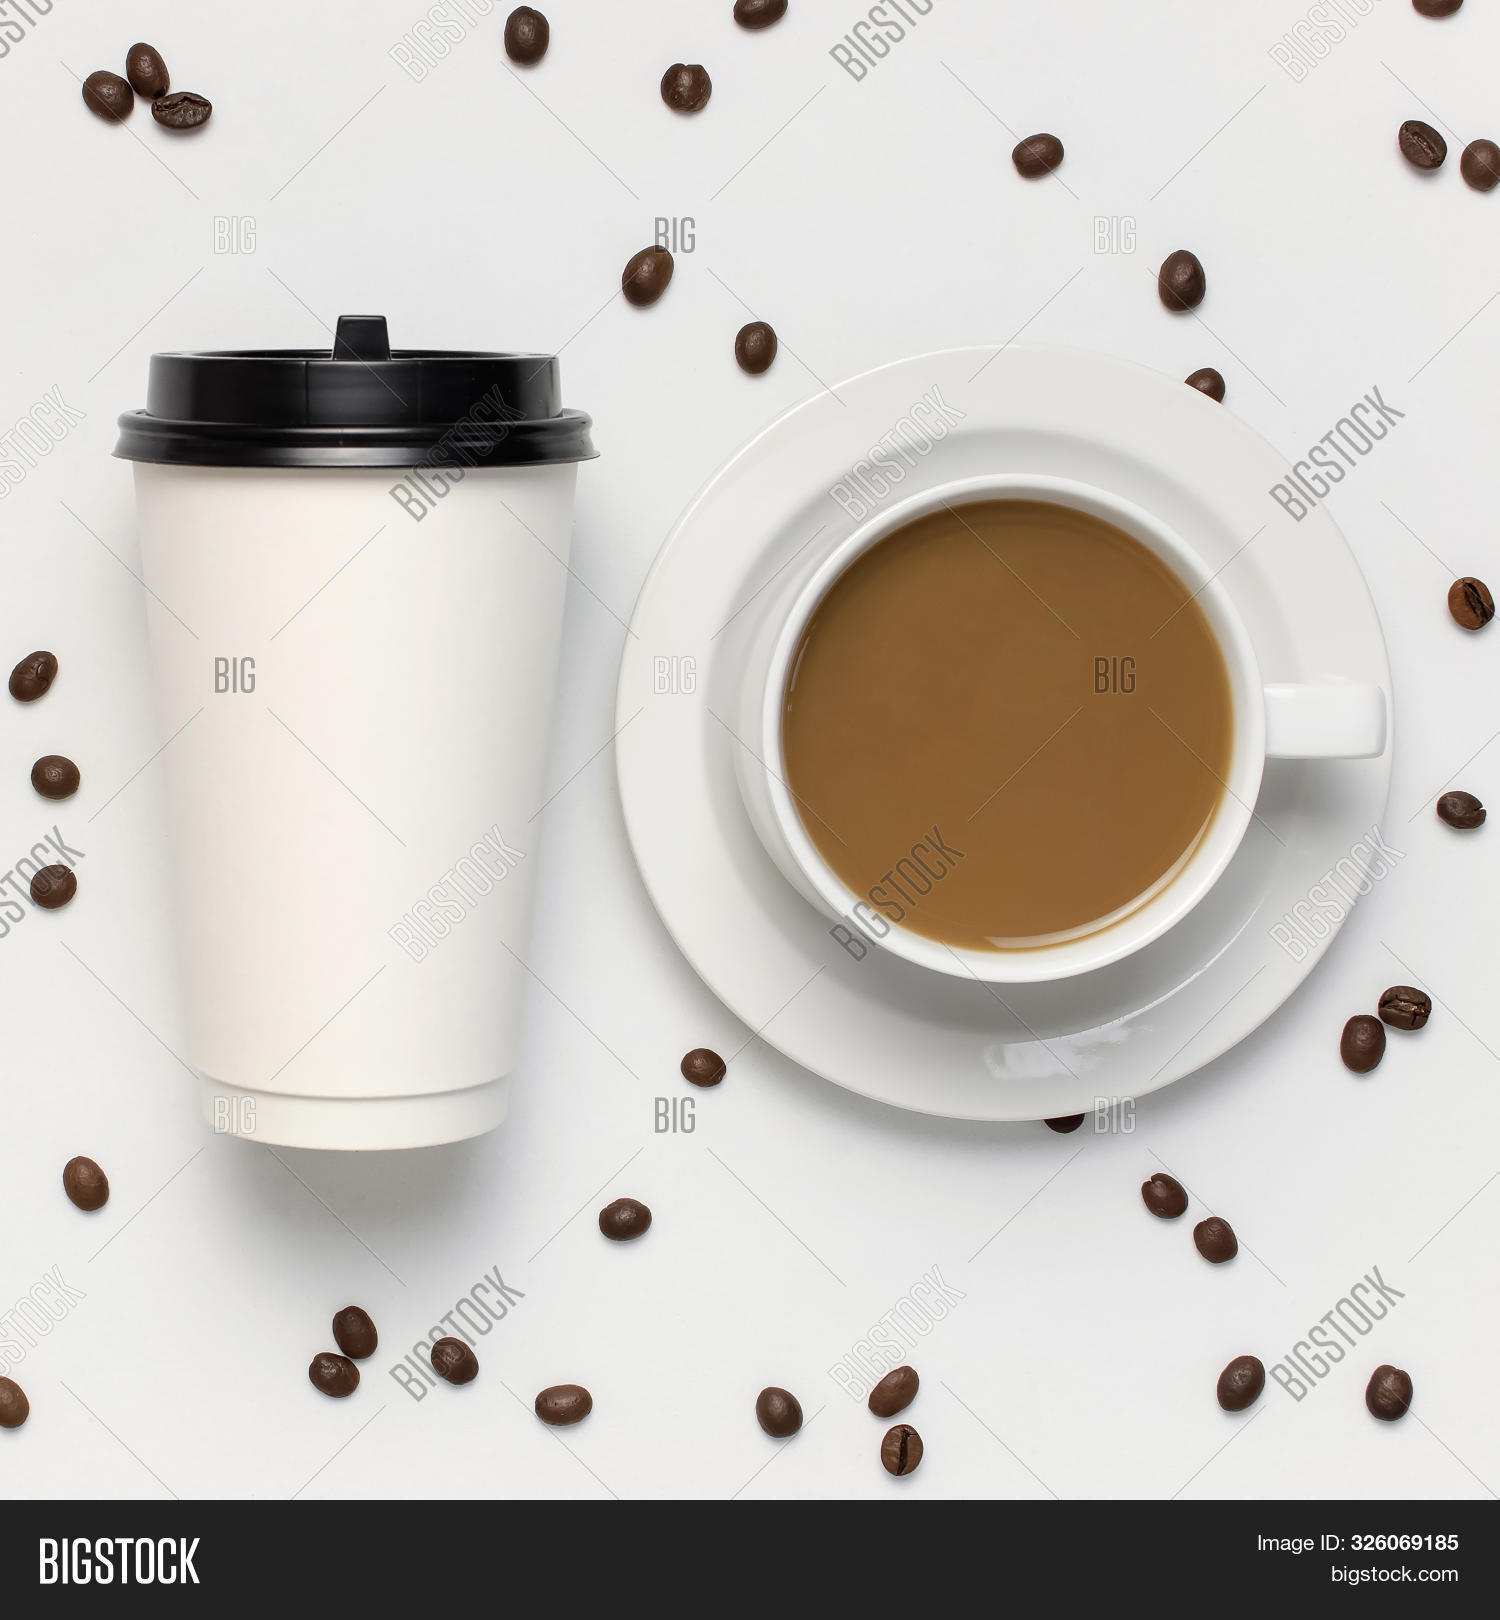 above,autumn,away,background,beverage,blank,breakfast,cafe,caffeine,cappuccino,cardboard,clipping,cocoa,coffee,container,cream,cup,disposable,drink,empty,espresso,fall,go,golden,gray,hot,label,latte,leaves,love,mockup,paper,portable,space,take,takeaway,takeout,tea,text,travel,white